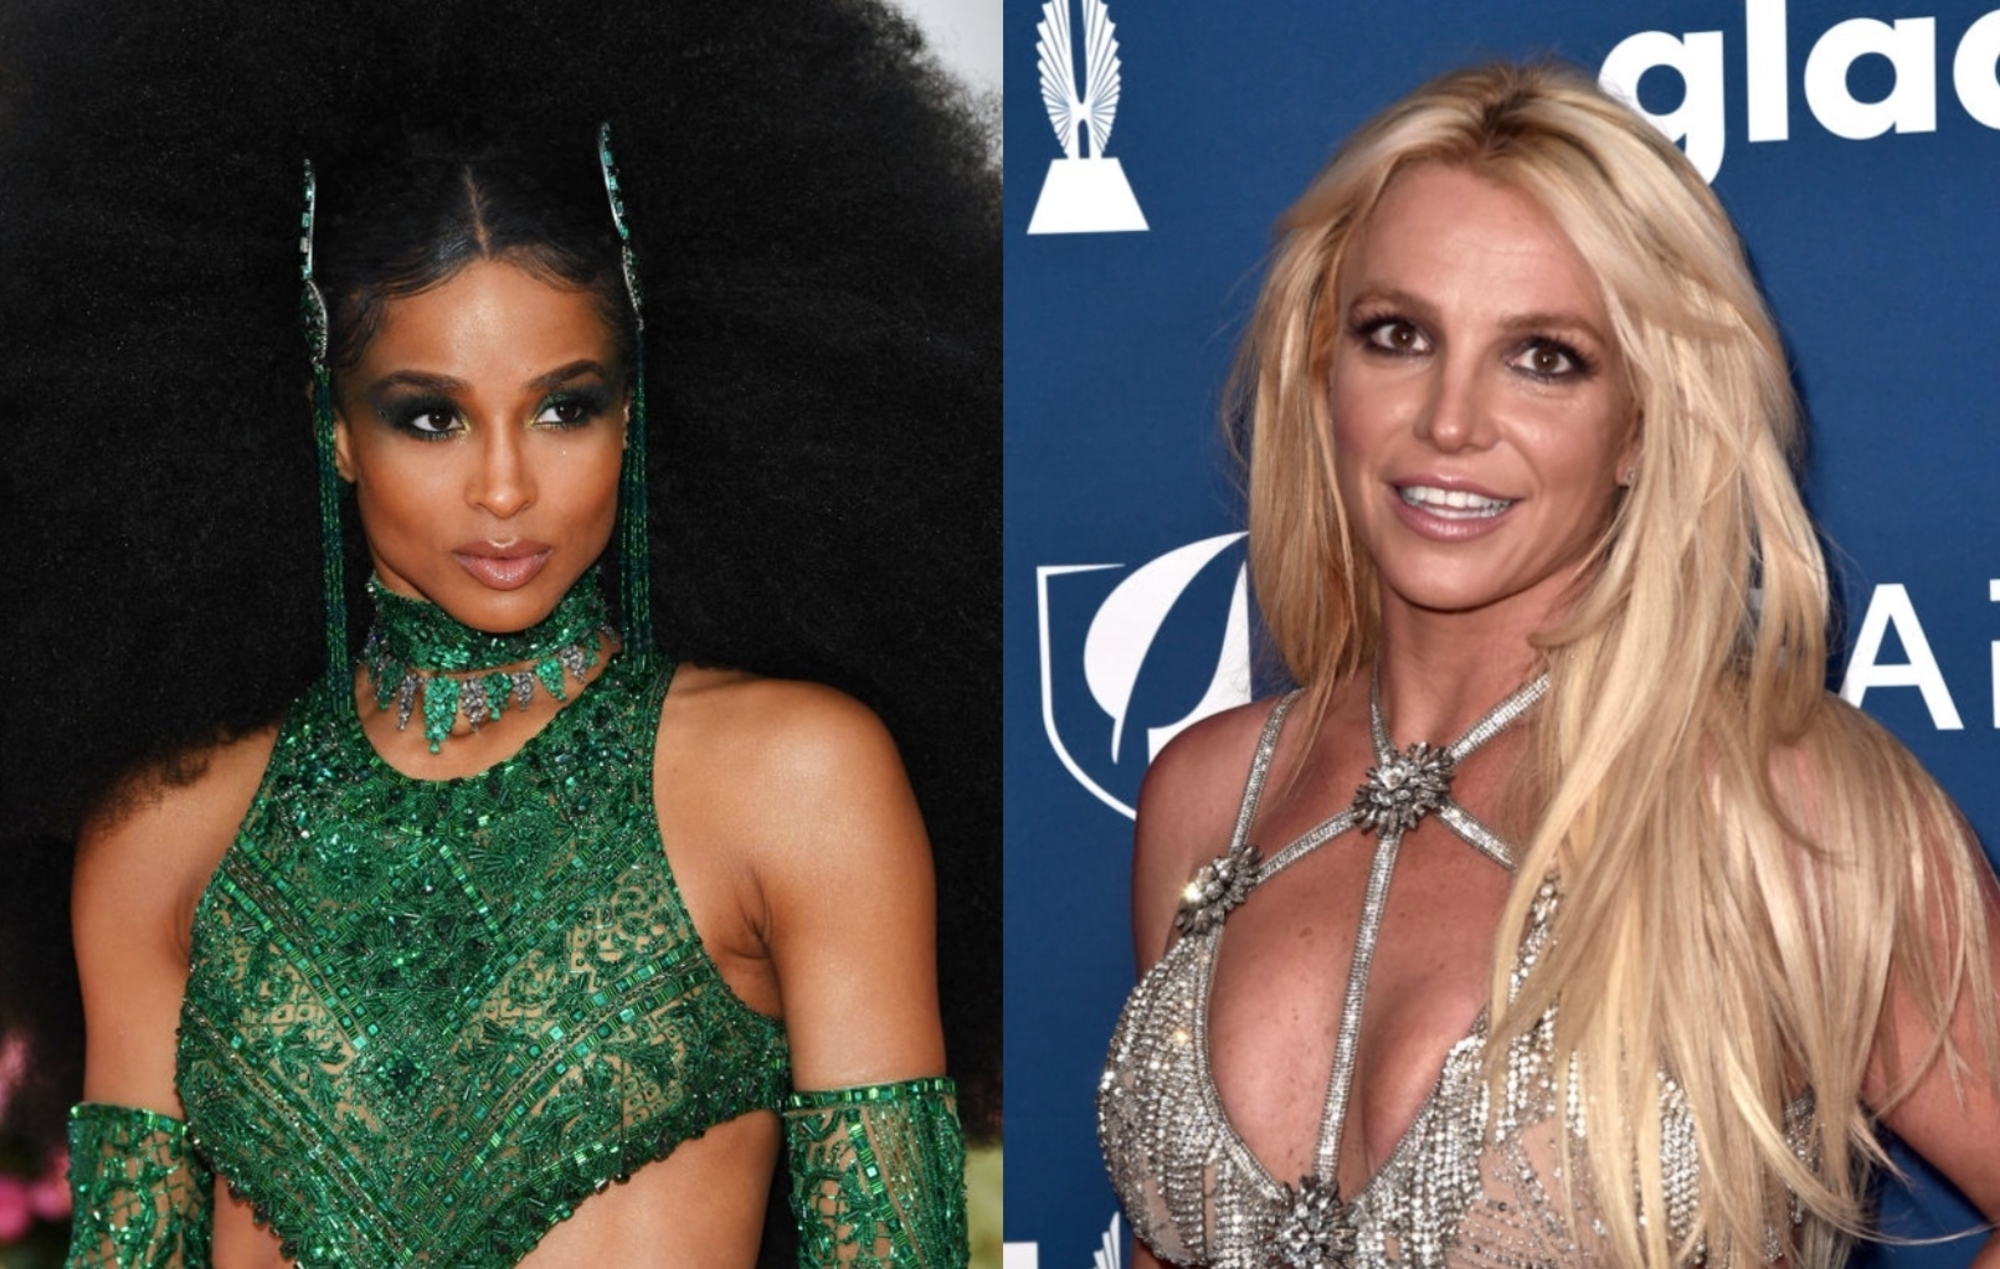 Ciara Says Britney Spears Was Almost Given Her Hit Goodies